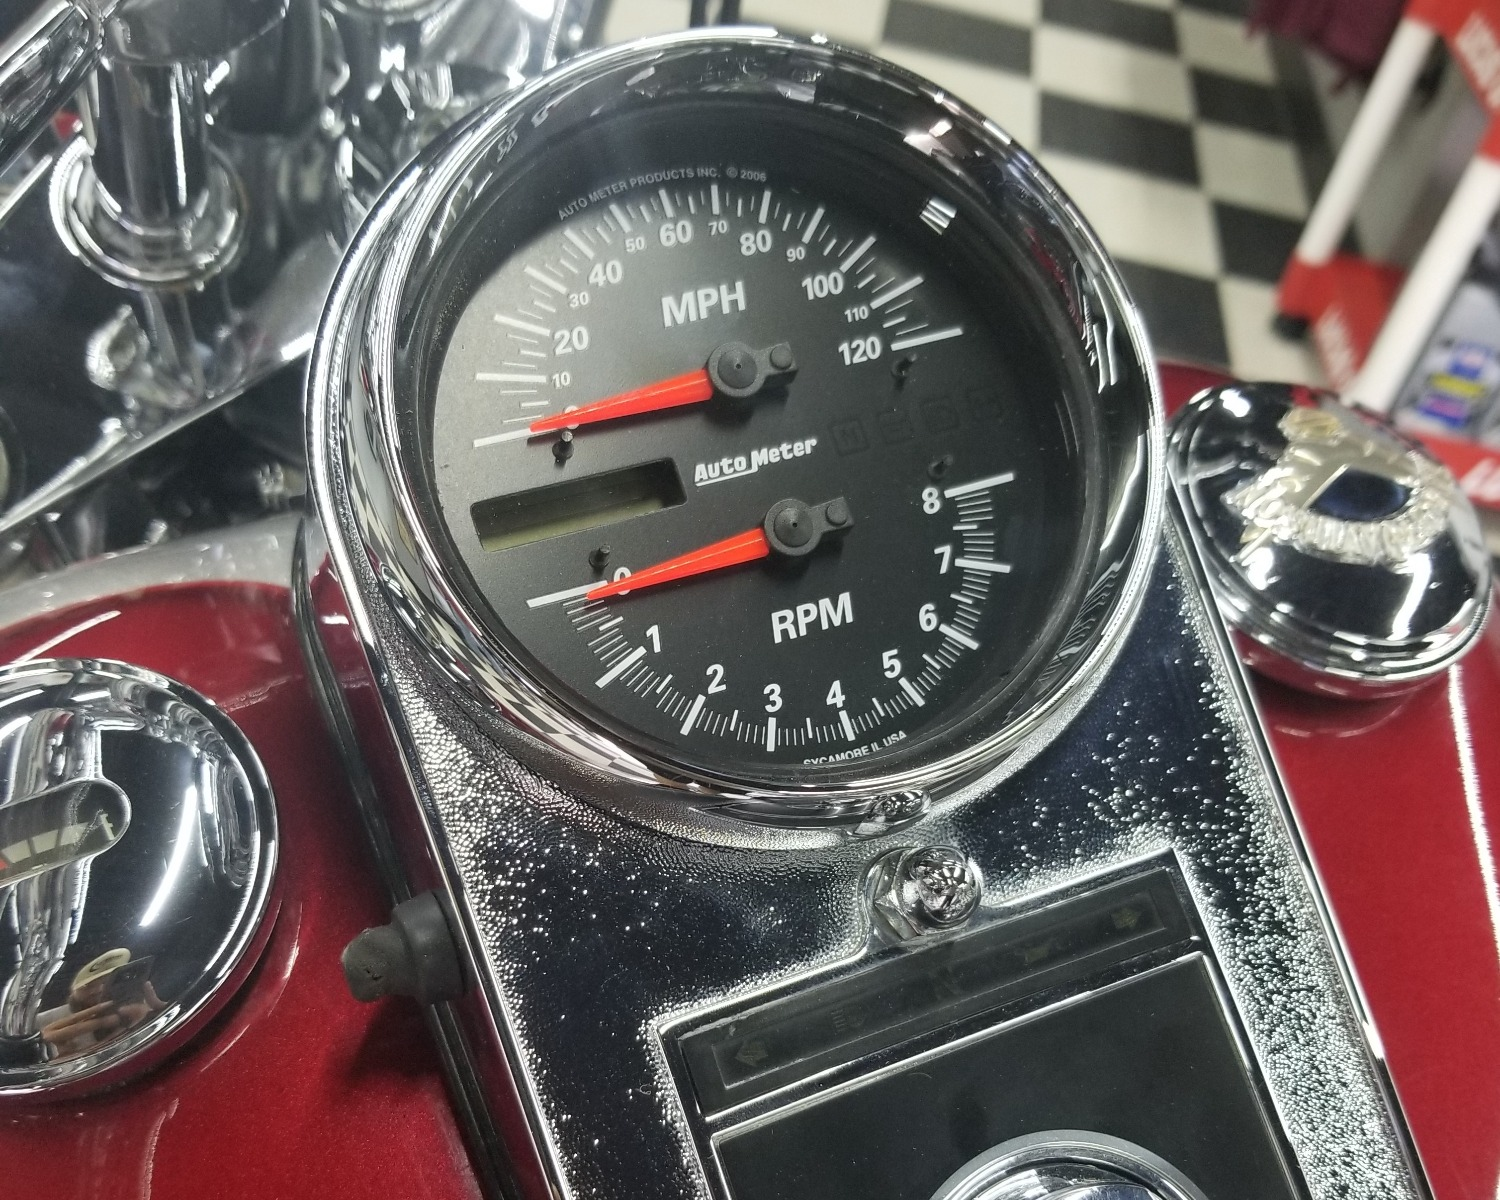 Auto Meter Tach Wiring Pro Cycle Trusted Diagram Direct Fit Speedo19466 Dissident Custom With Shift Light